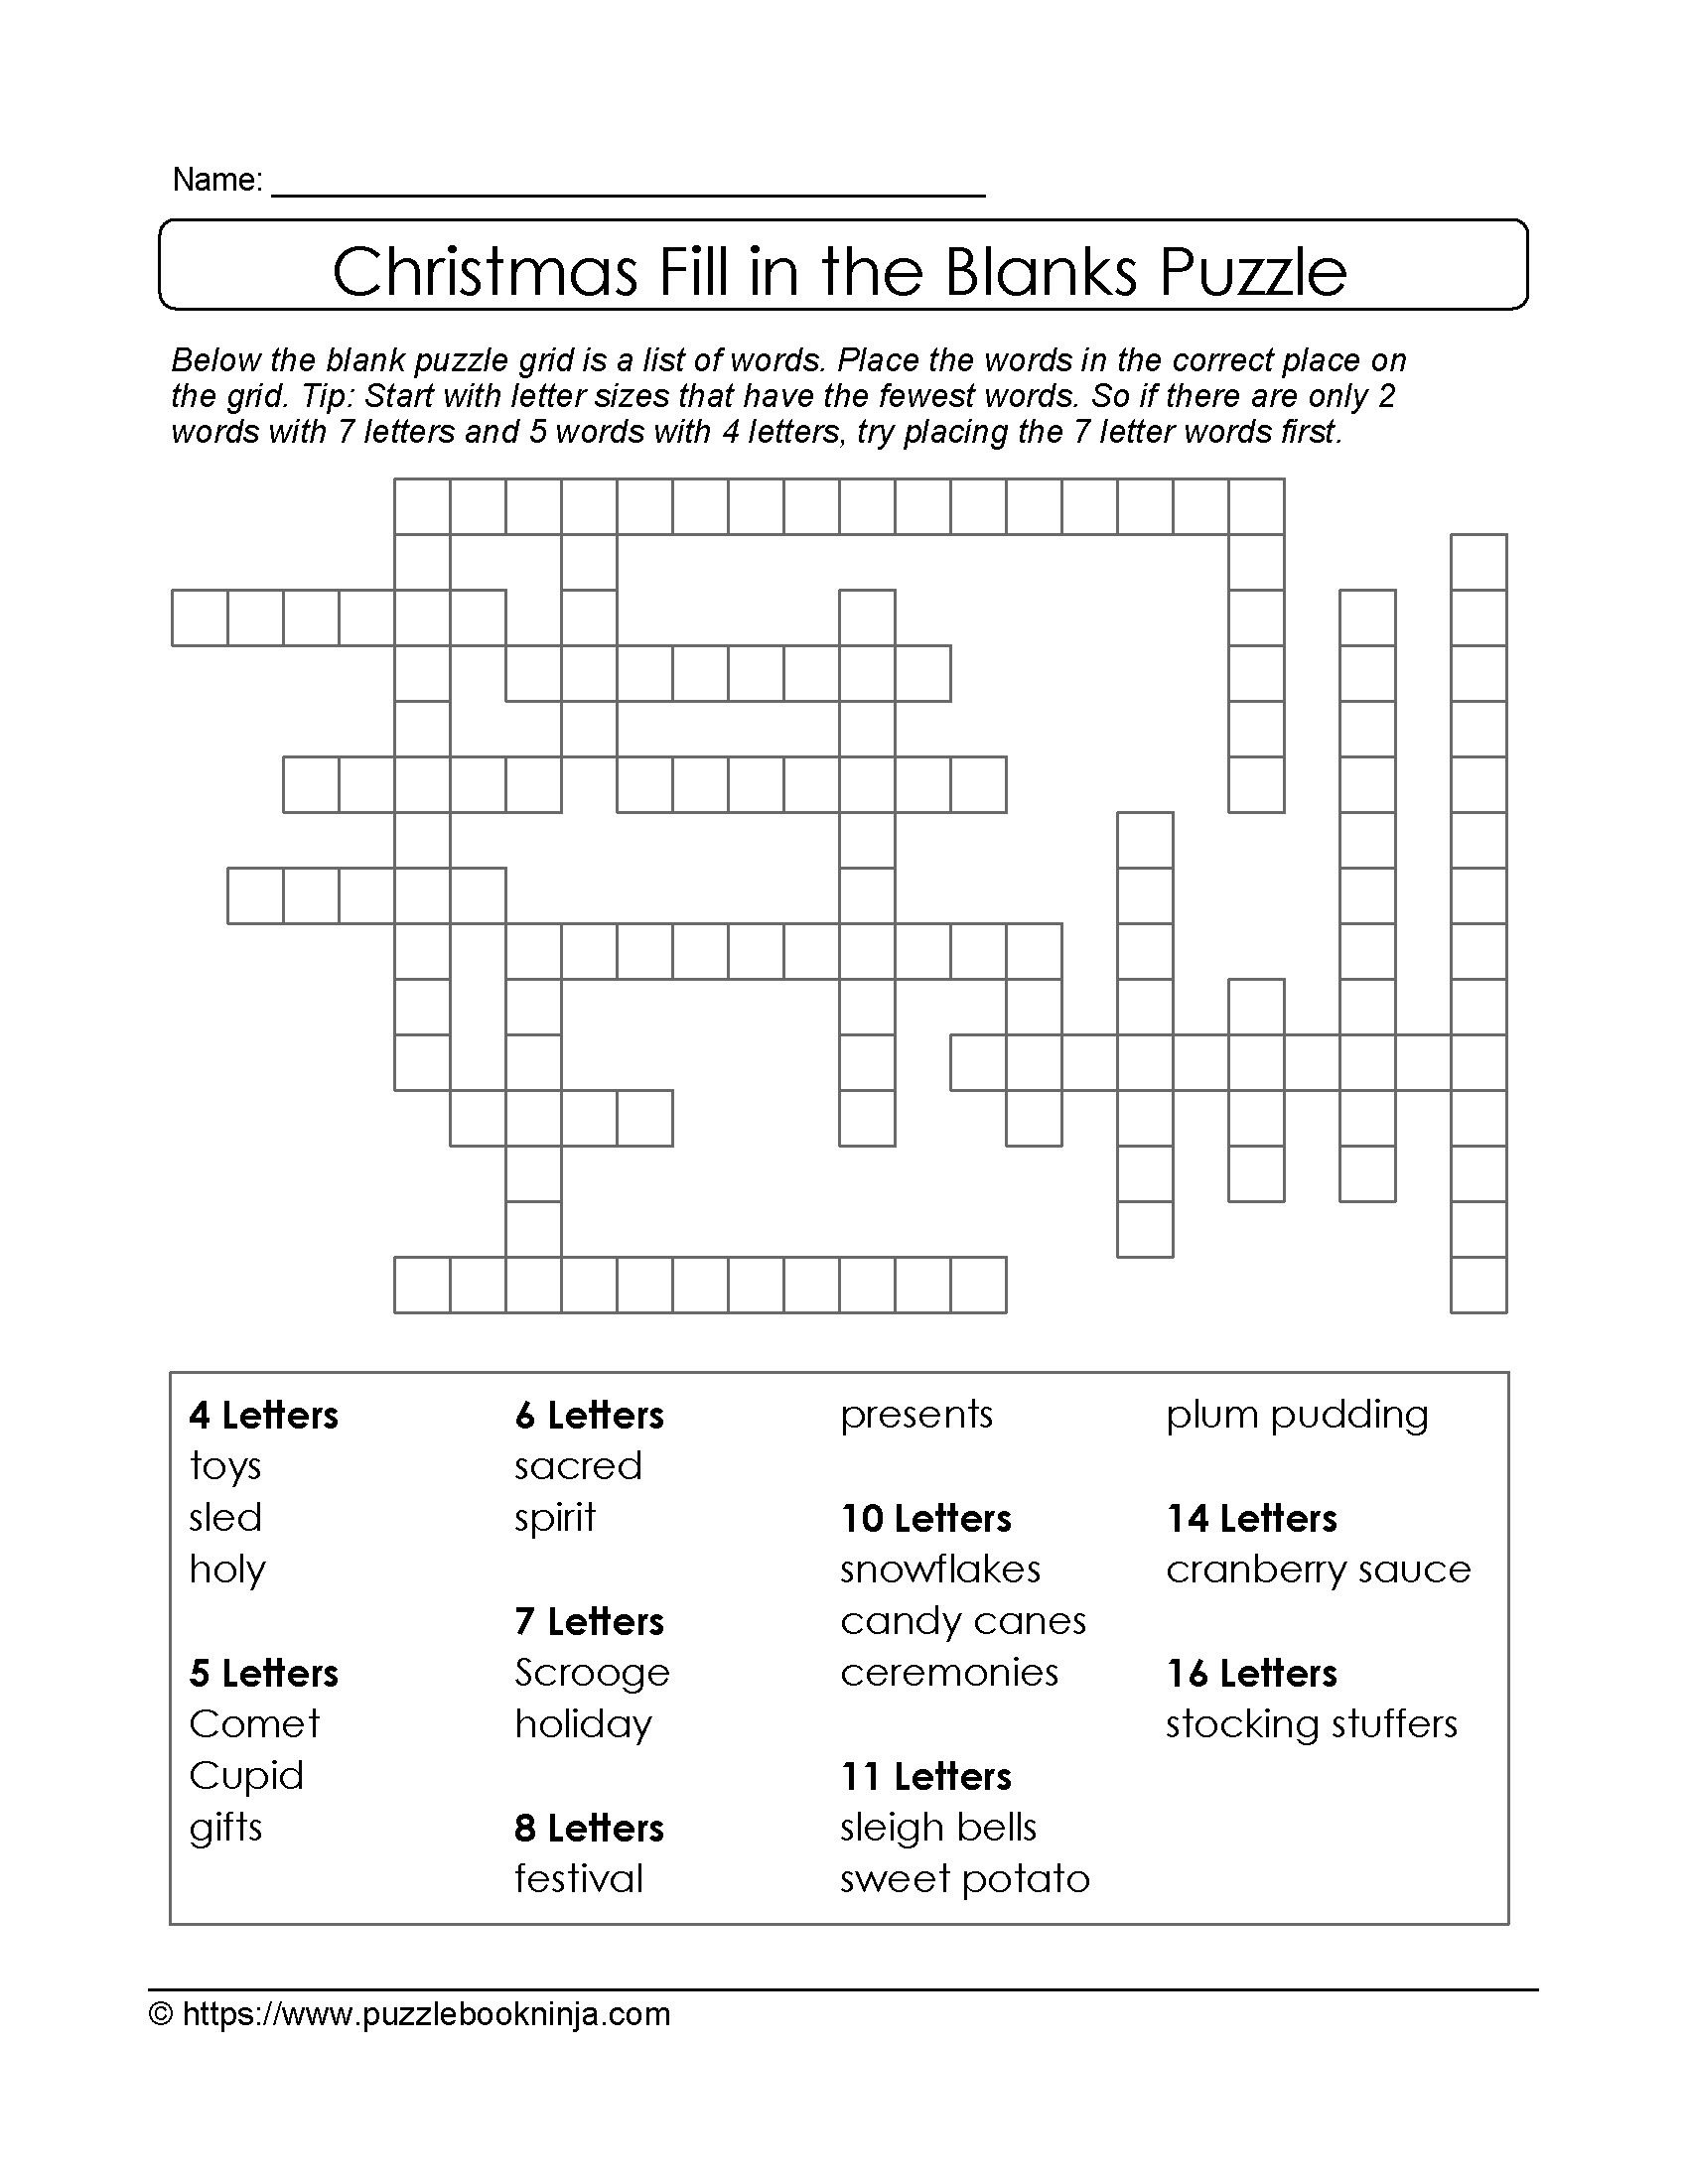 Puzzles To Print. Free Xmas Theme Fill In The Blanks Puzzle - Free Printable Christmas Puzzle Sheets